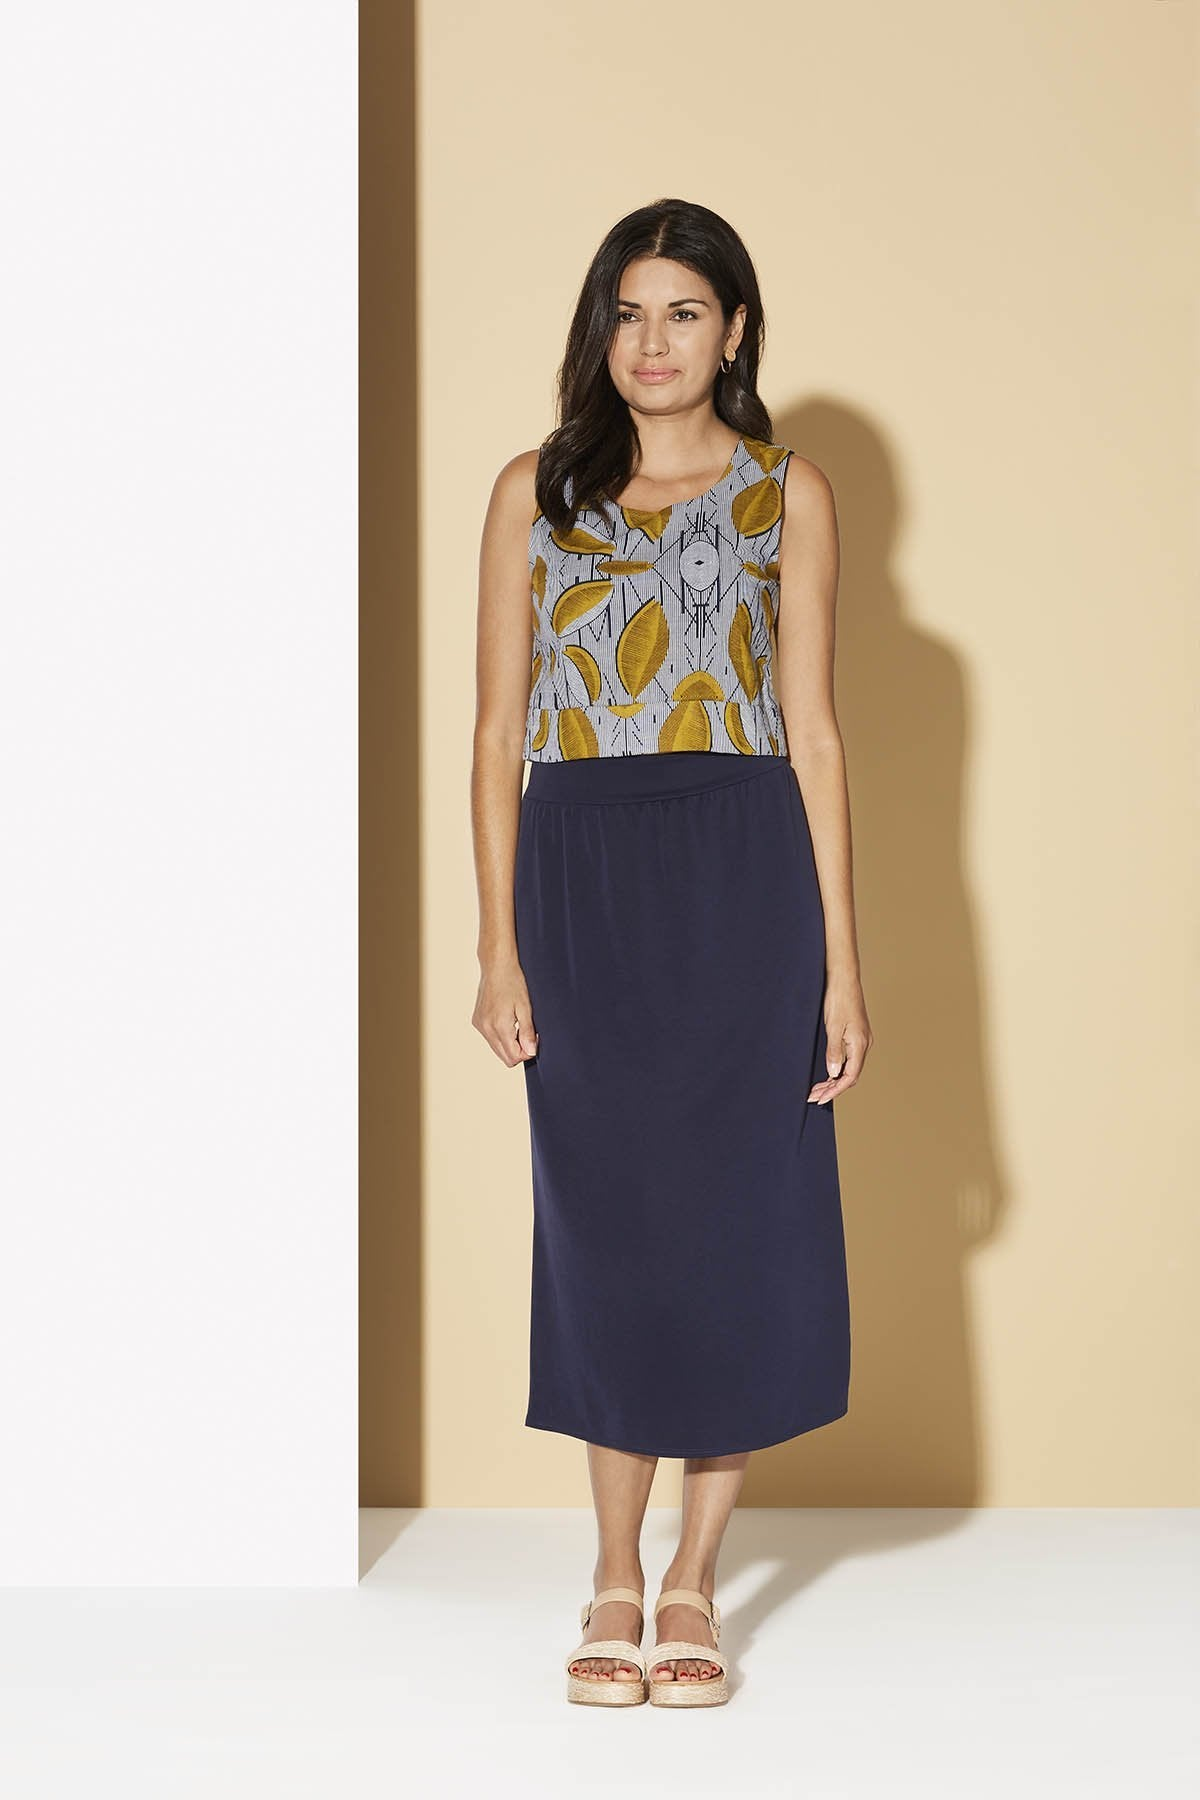 Yumbilla Skirt by Cherry Bobin, Navy, midi-length, elastic waist, belt, modal blend, sizes XS to XL, made in Quebec